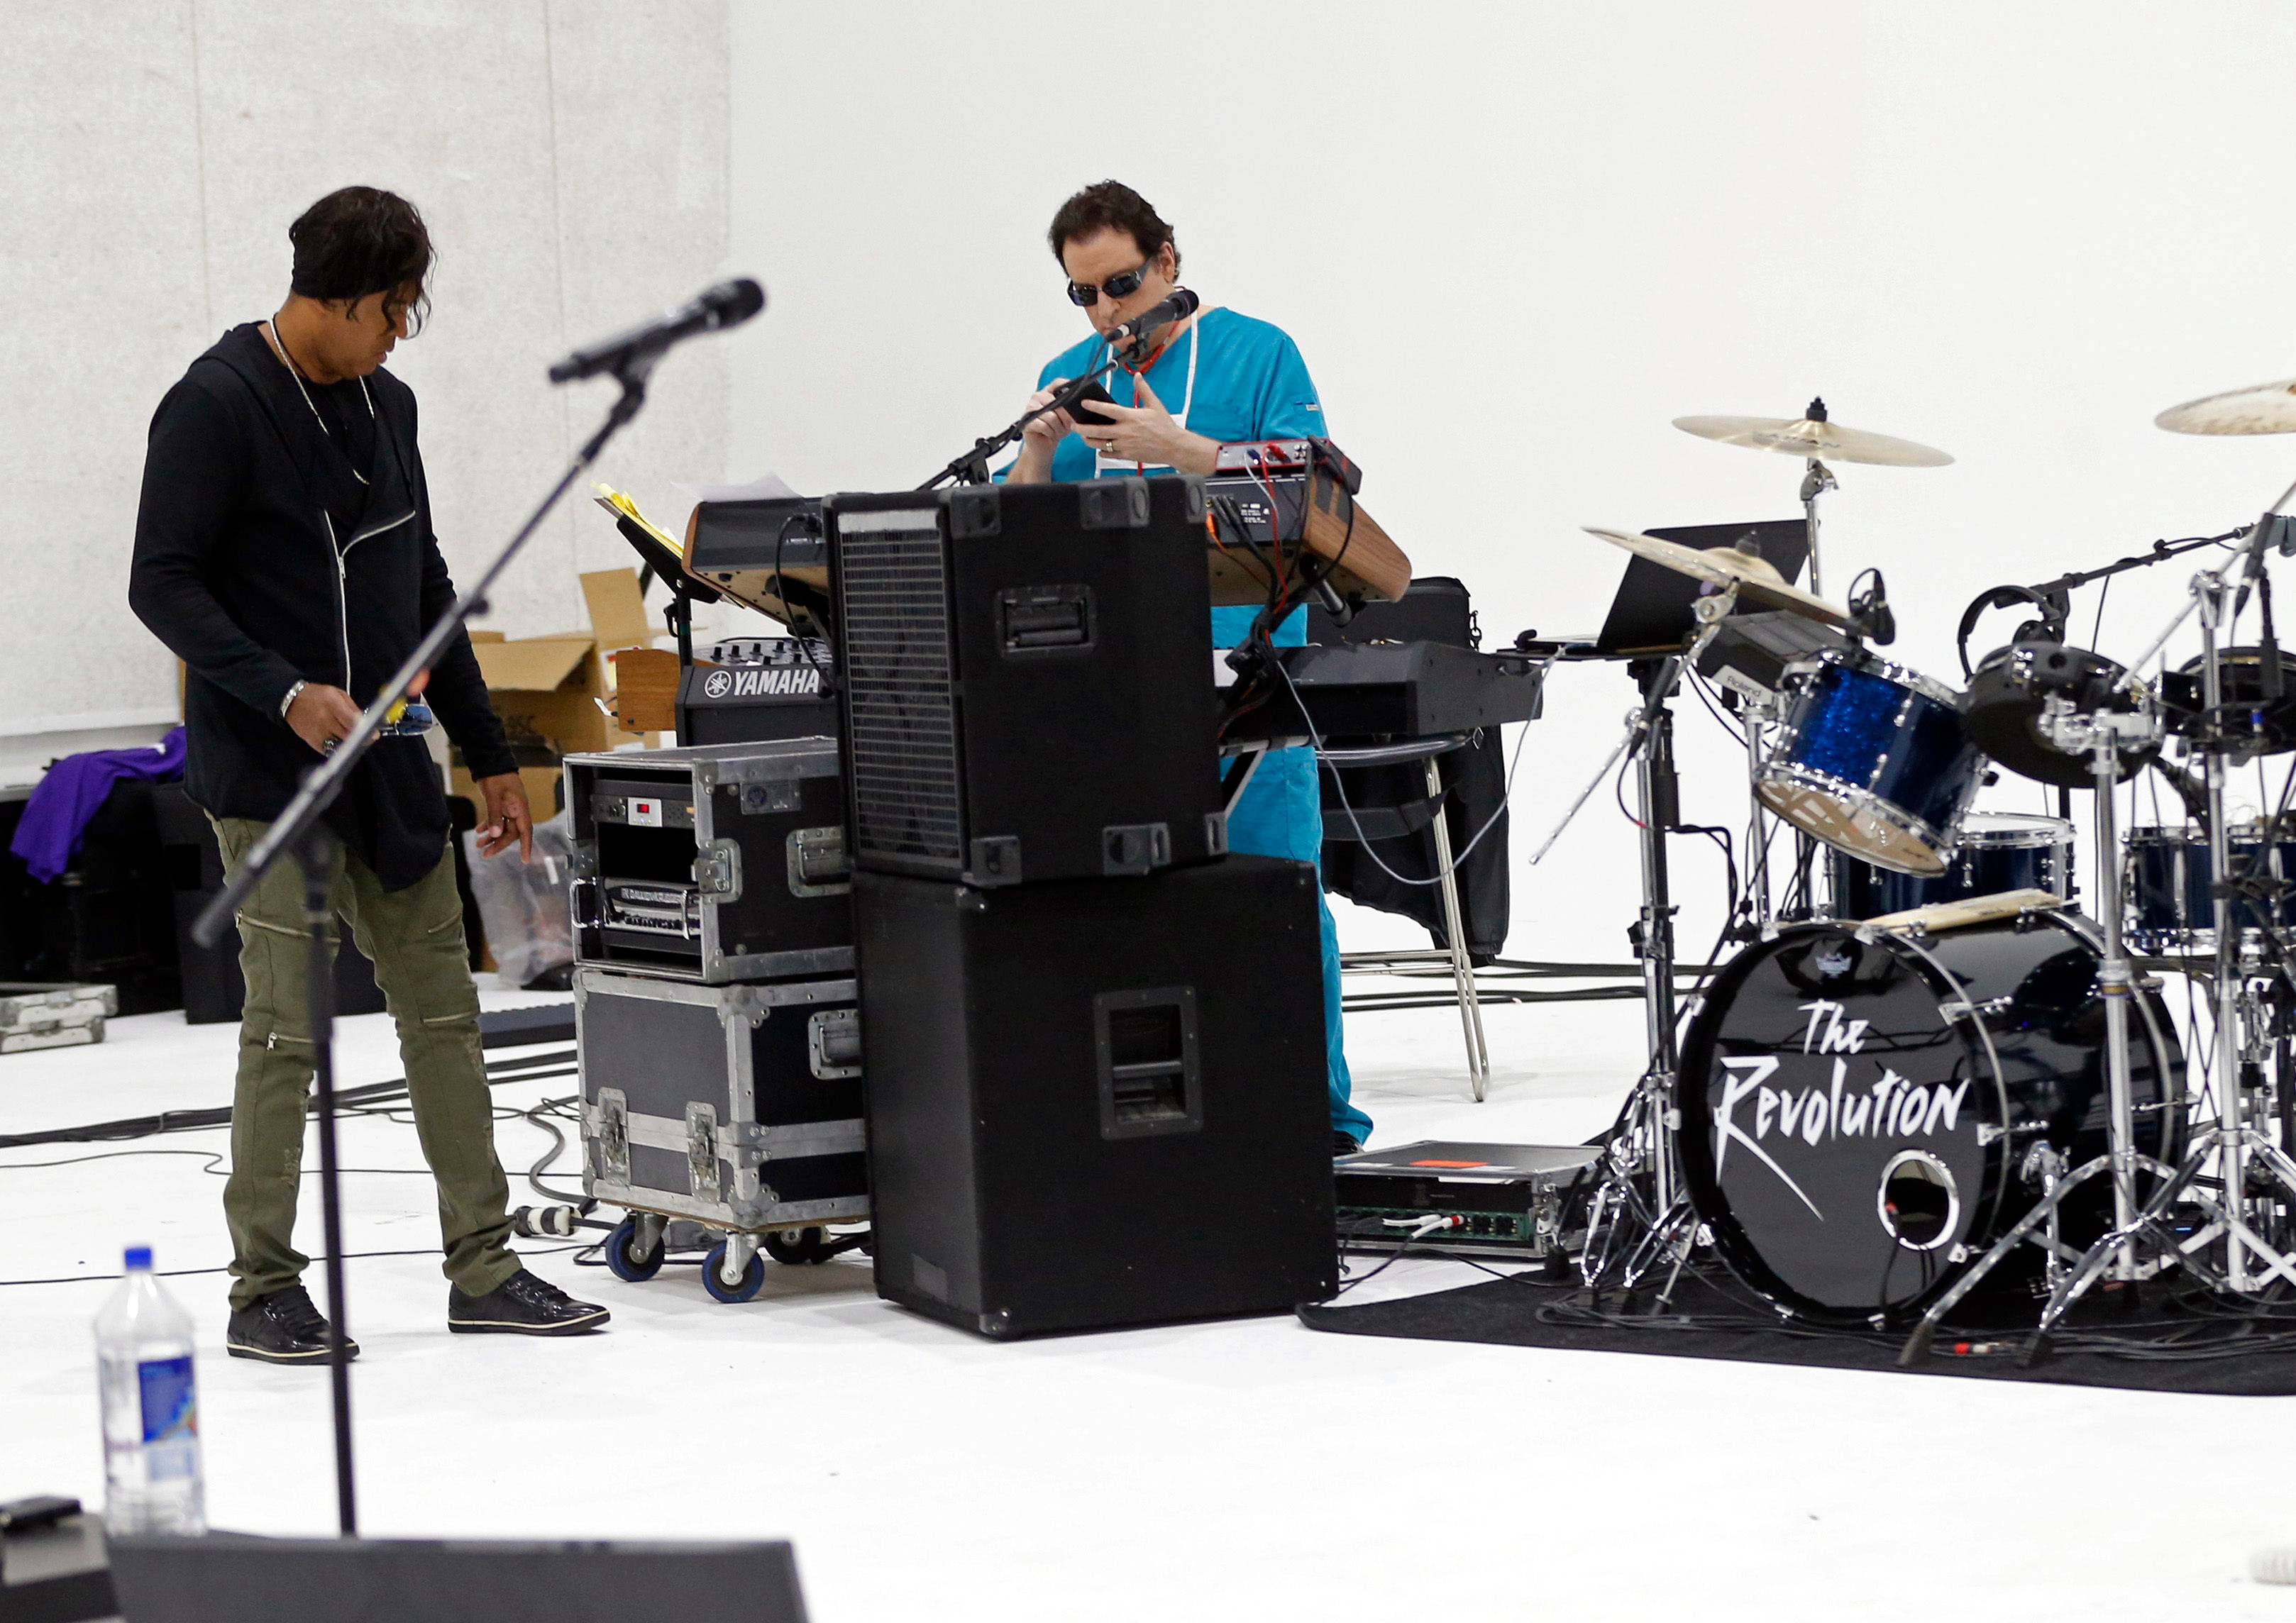 Members of Prince's 1980's band The Revolution, keyboarder Matt Fink (right) and bassist BrownMark, prepare for rehearsals Wednesday, April 19, at a studio in Minneapolis. (AP Photo/Jim Mone)